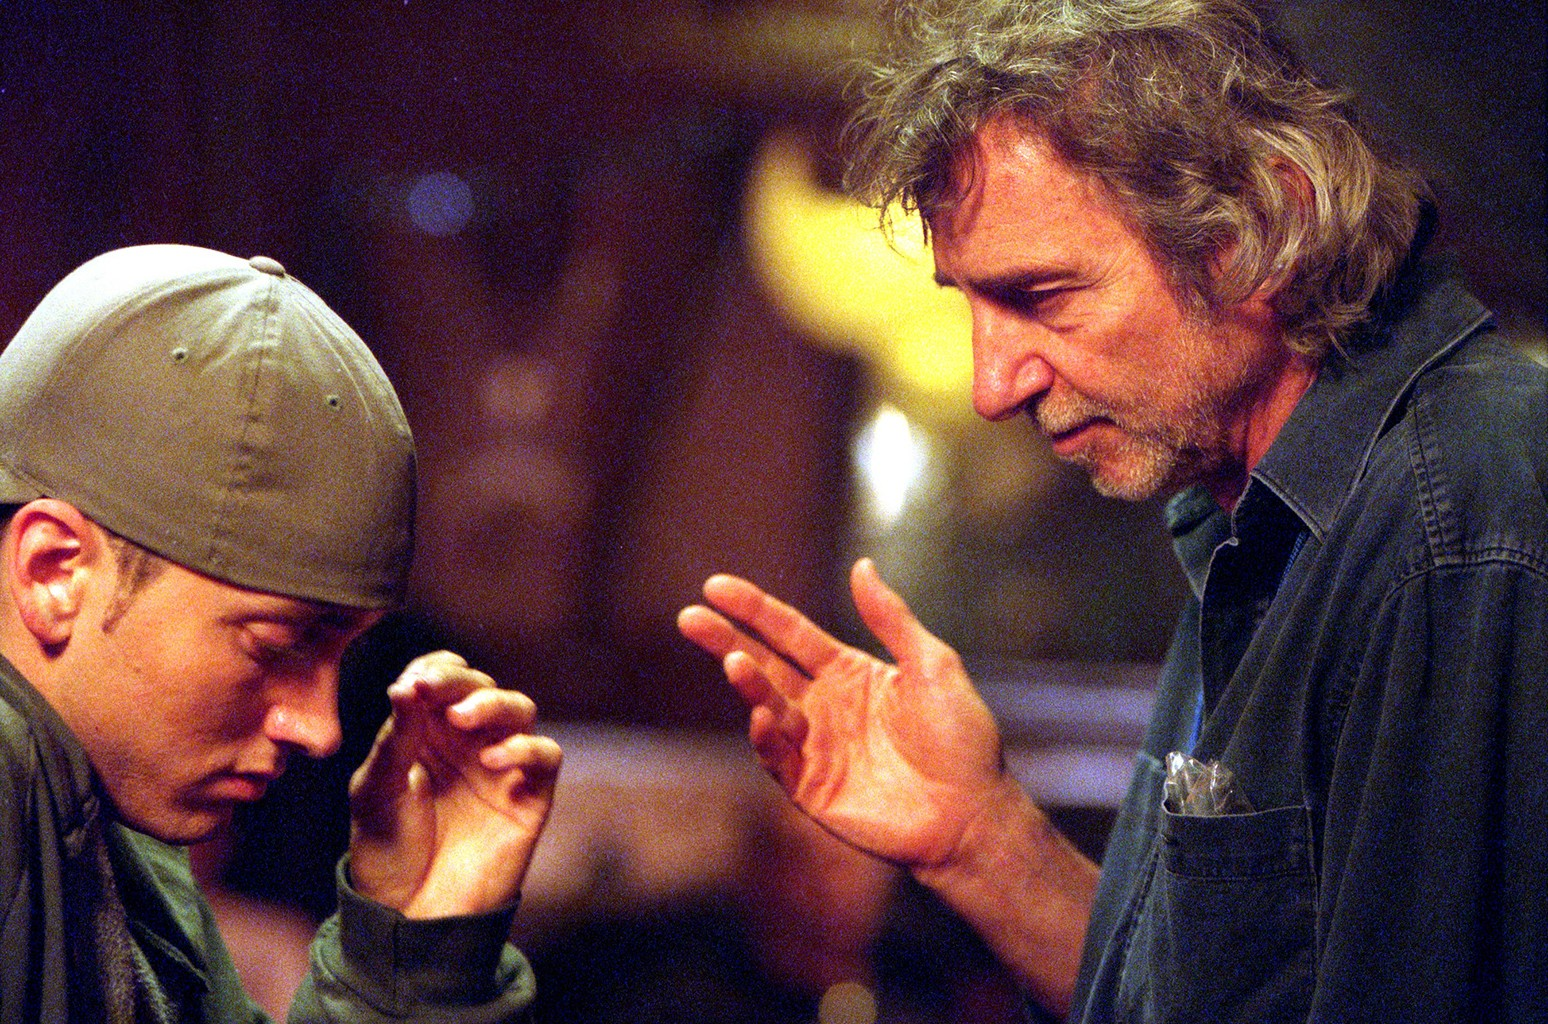 Eminem and director Curtis Hanson photographed on the set of '8 Mile' in 2002.